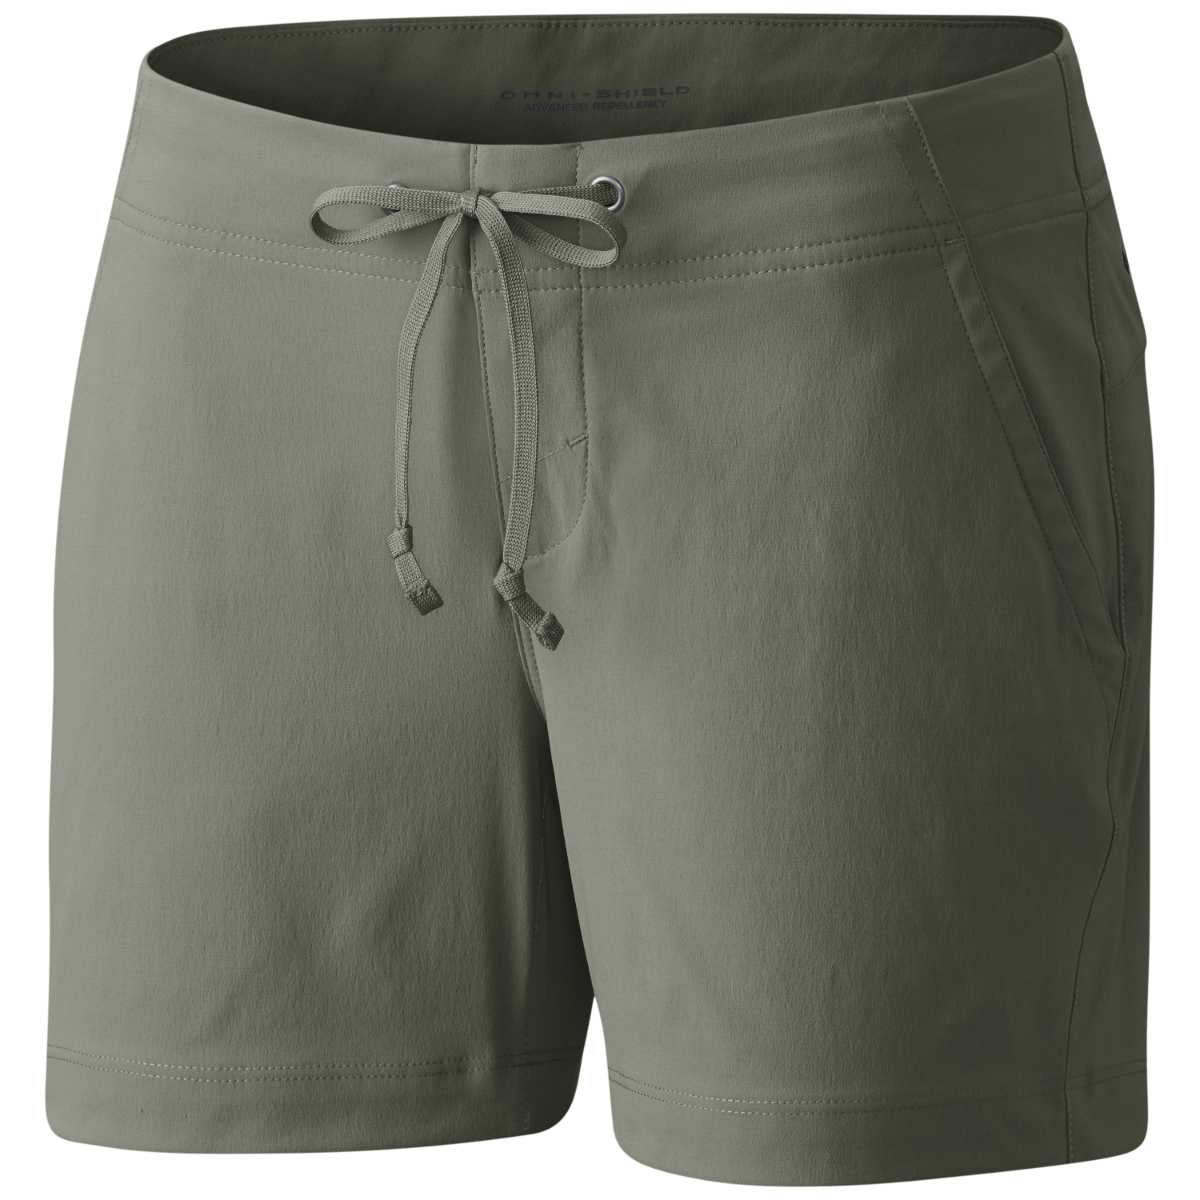 Columbia Women's Anytime Outdoor Shorts - Green, 12